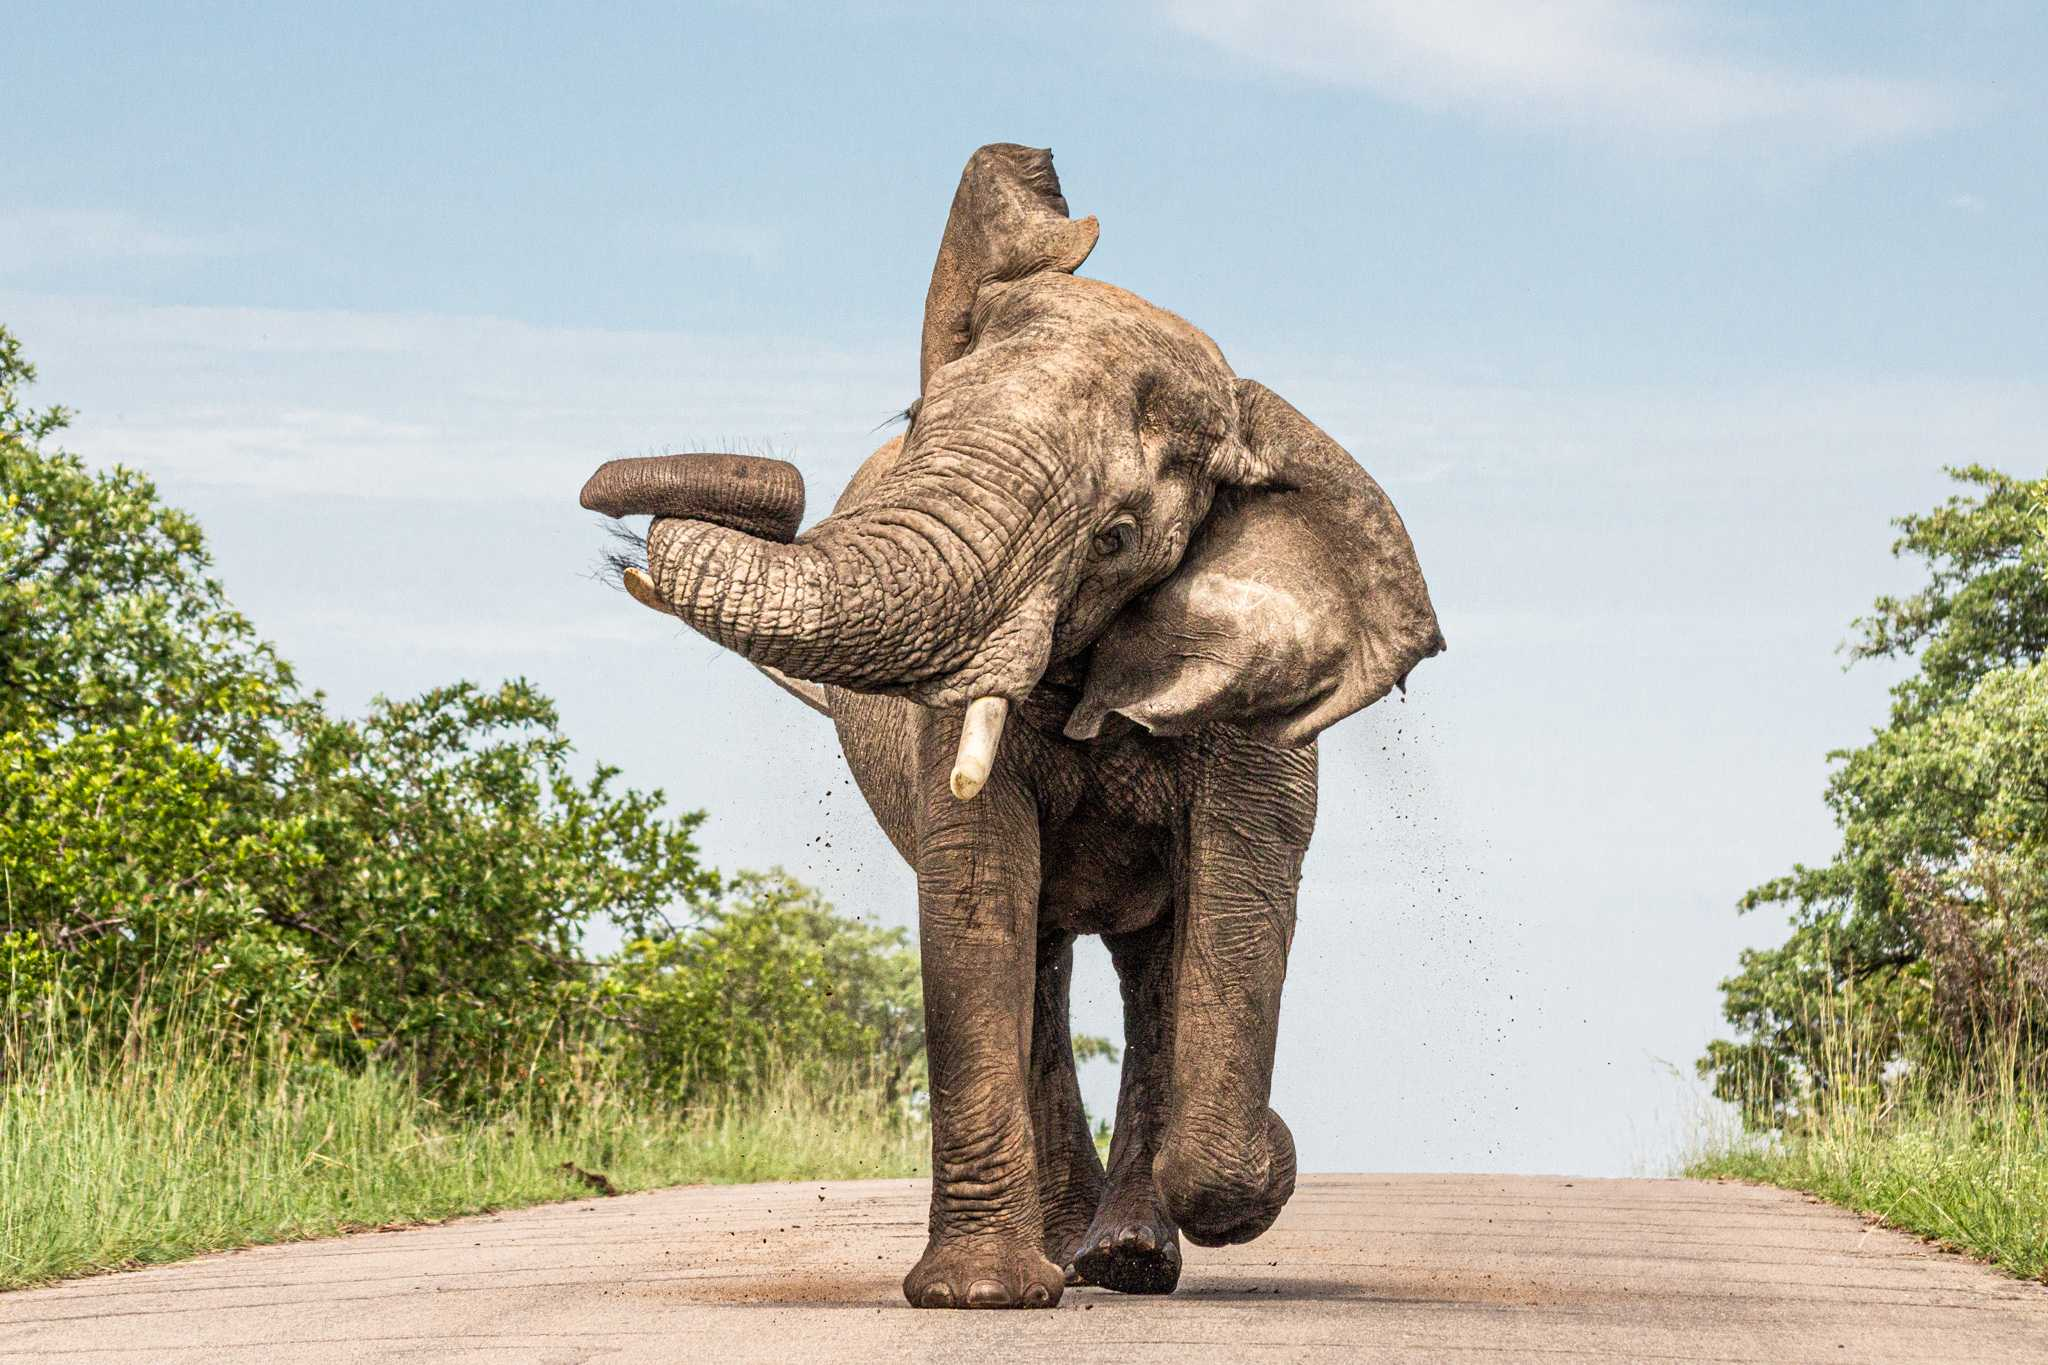 male elephant stands alone on the road swinging it's trunk as dirt flies off his back; this was a favorite moment on my South Africa vacation